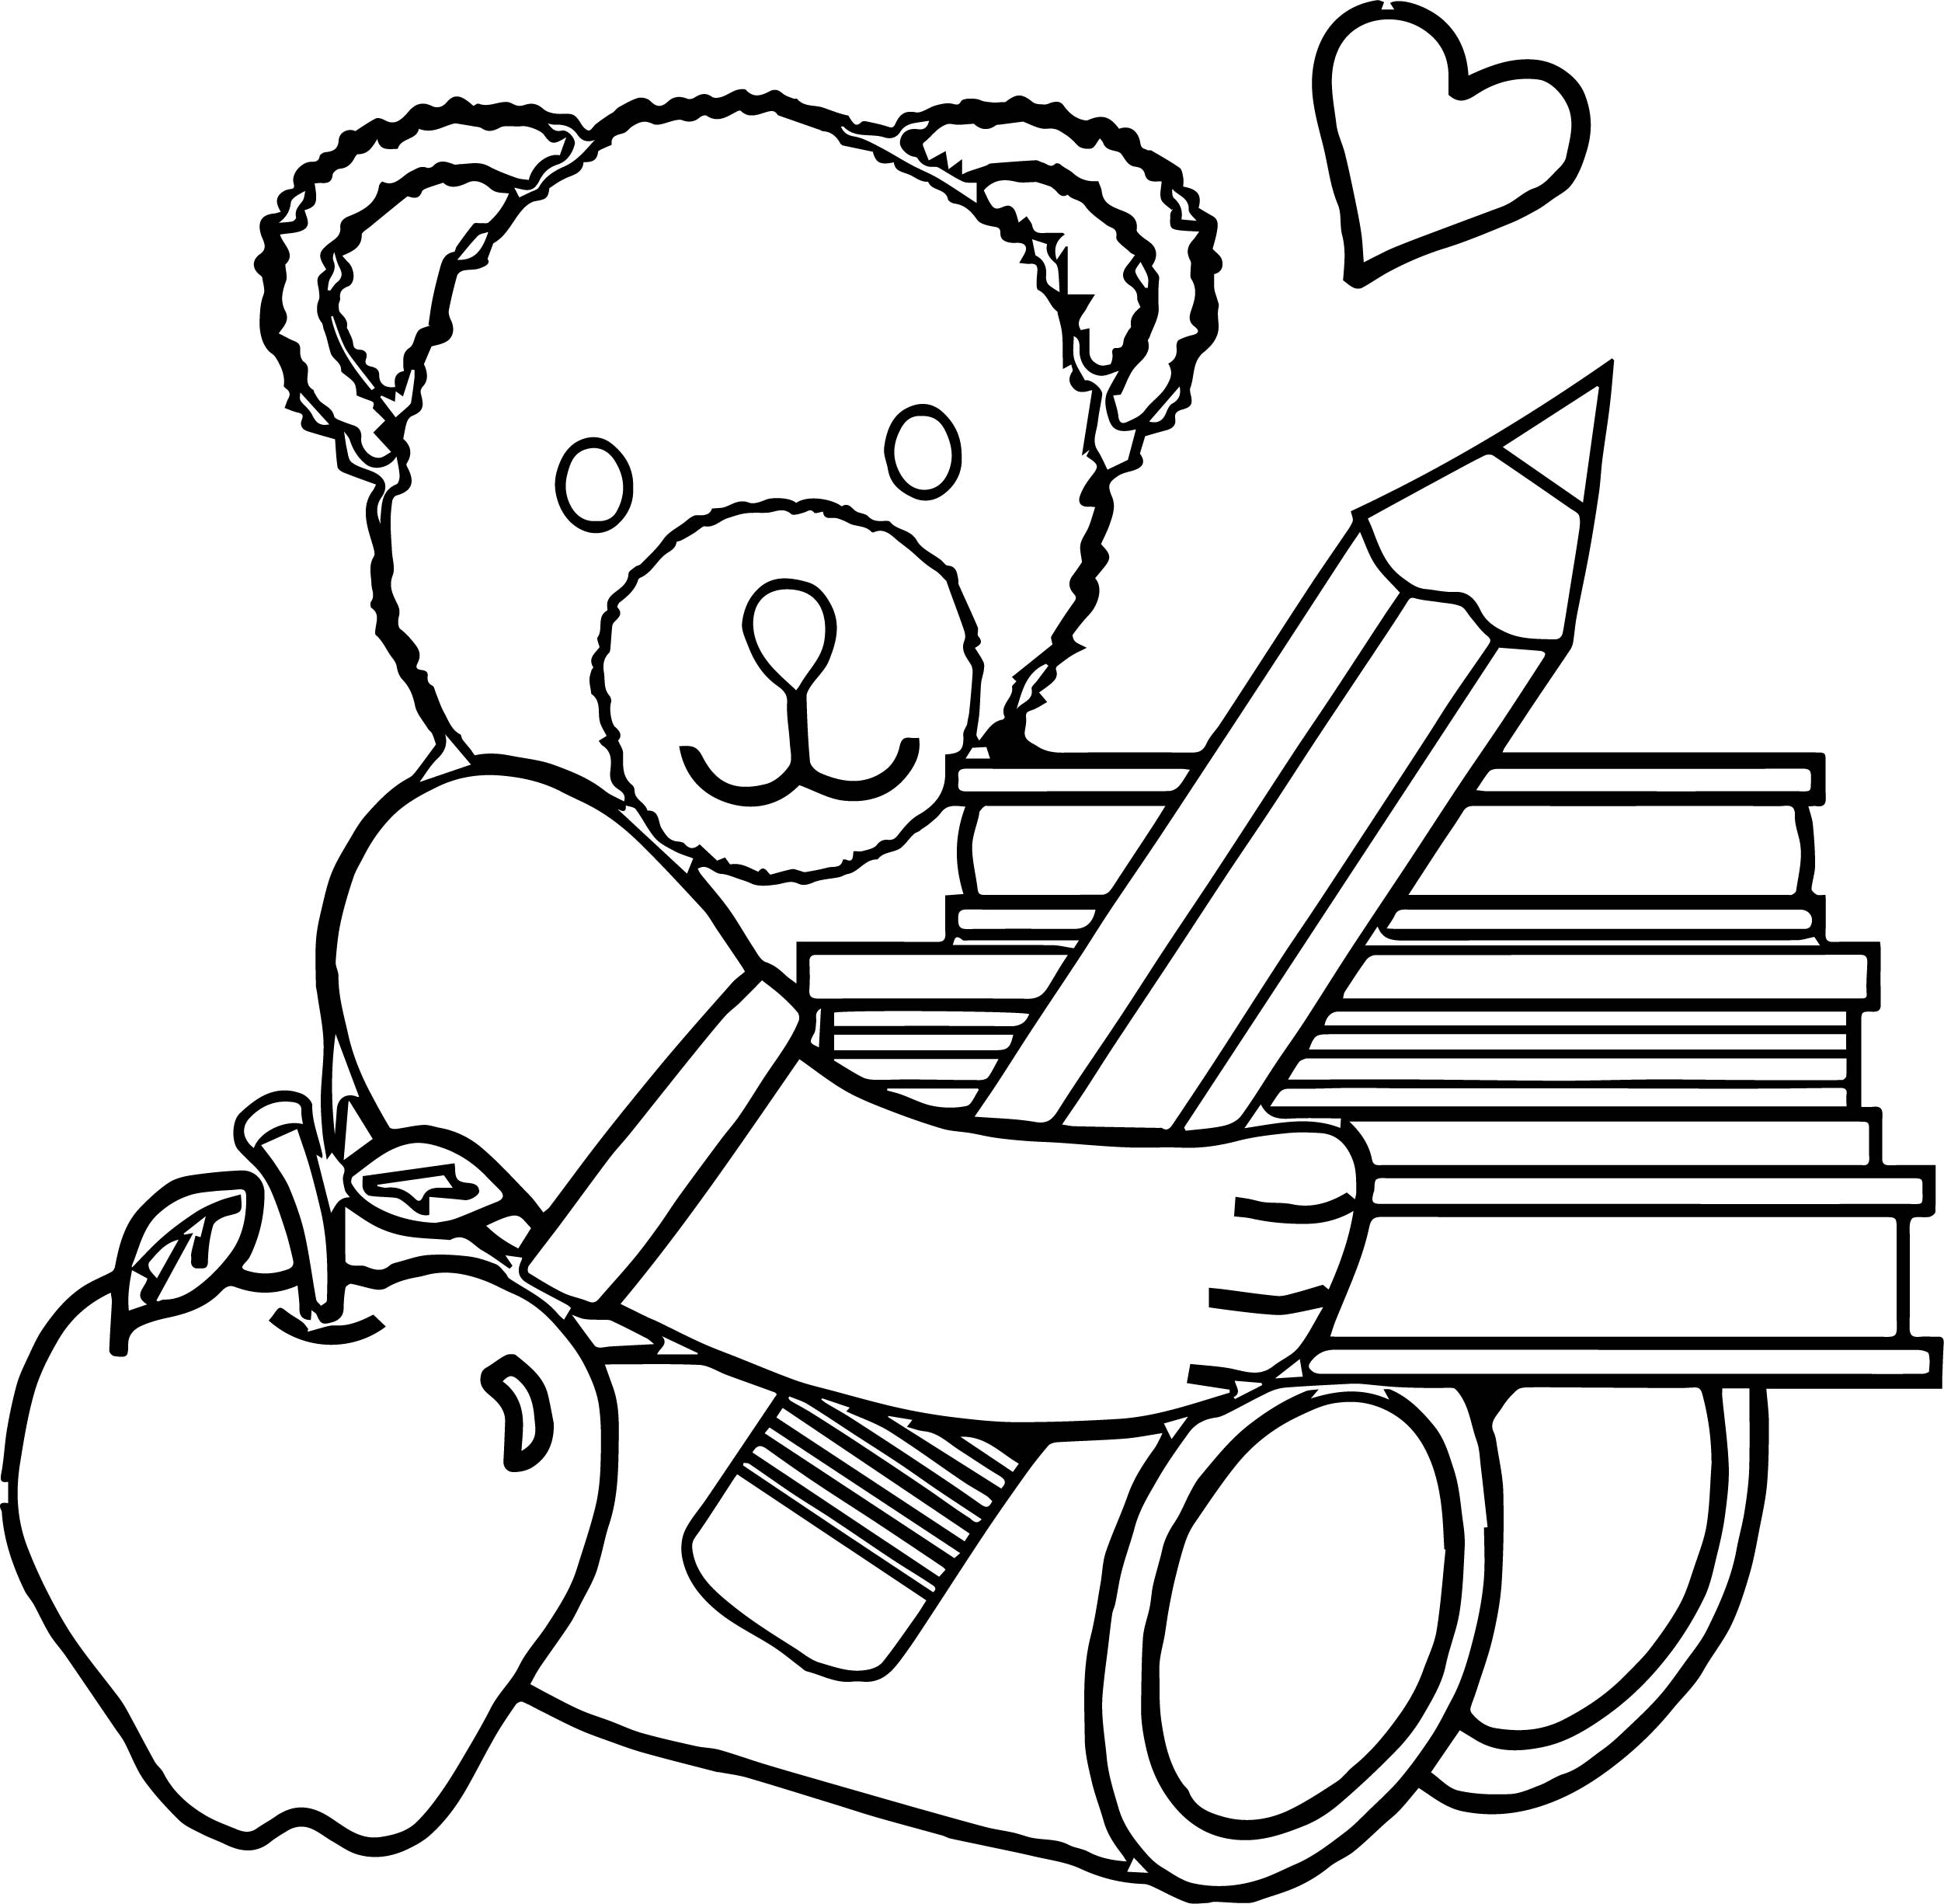 Big brown bear coloring pages ~ Brown Bear Pencil Coloring Pages